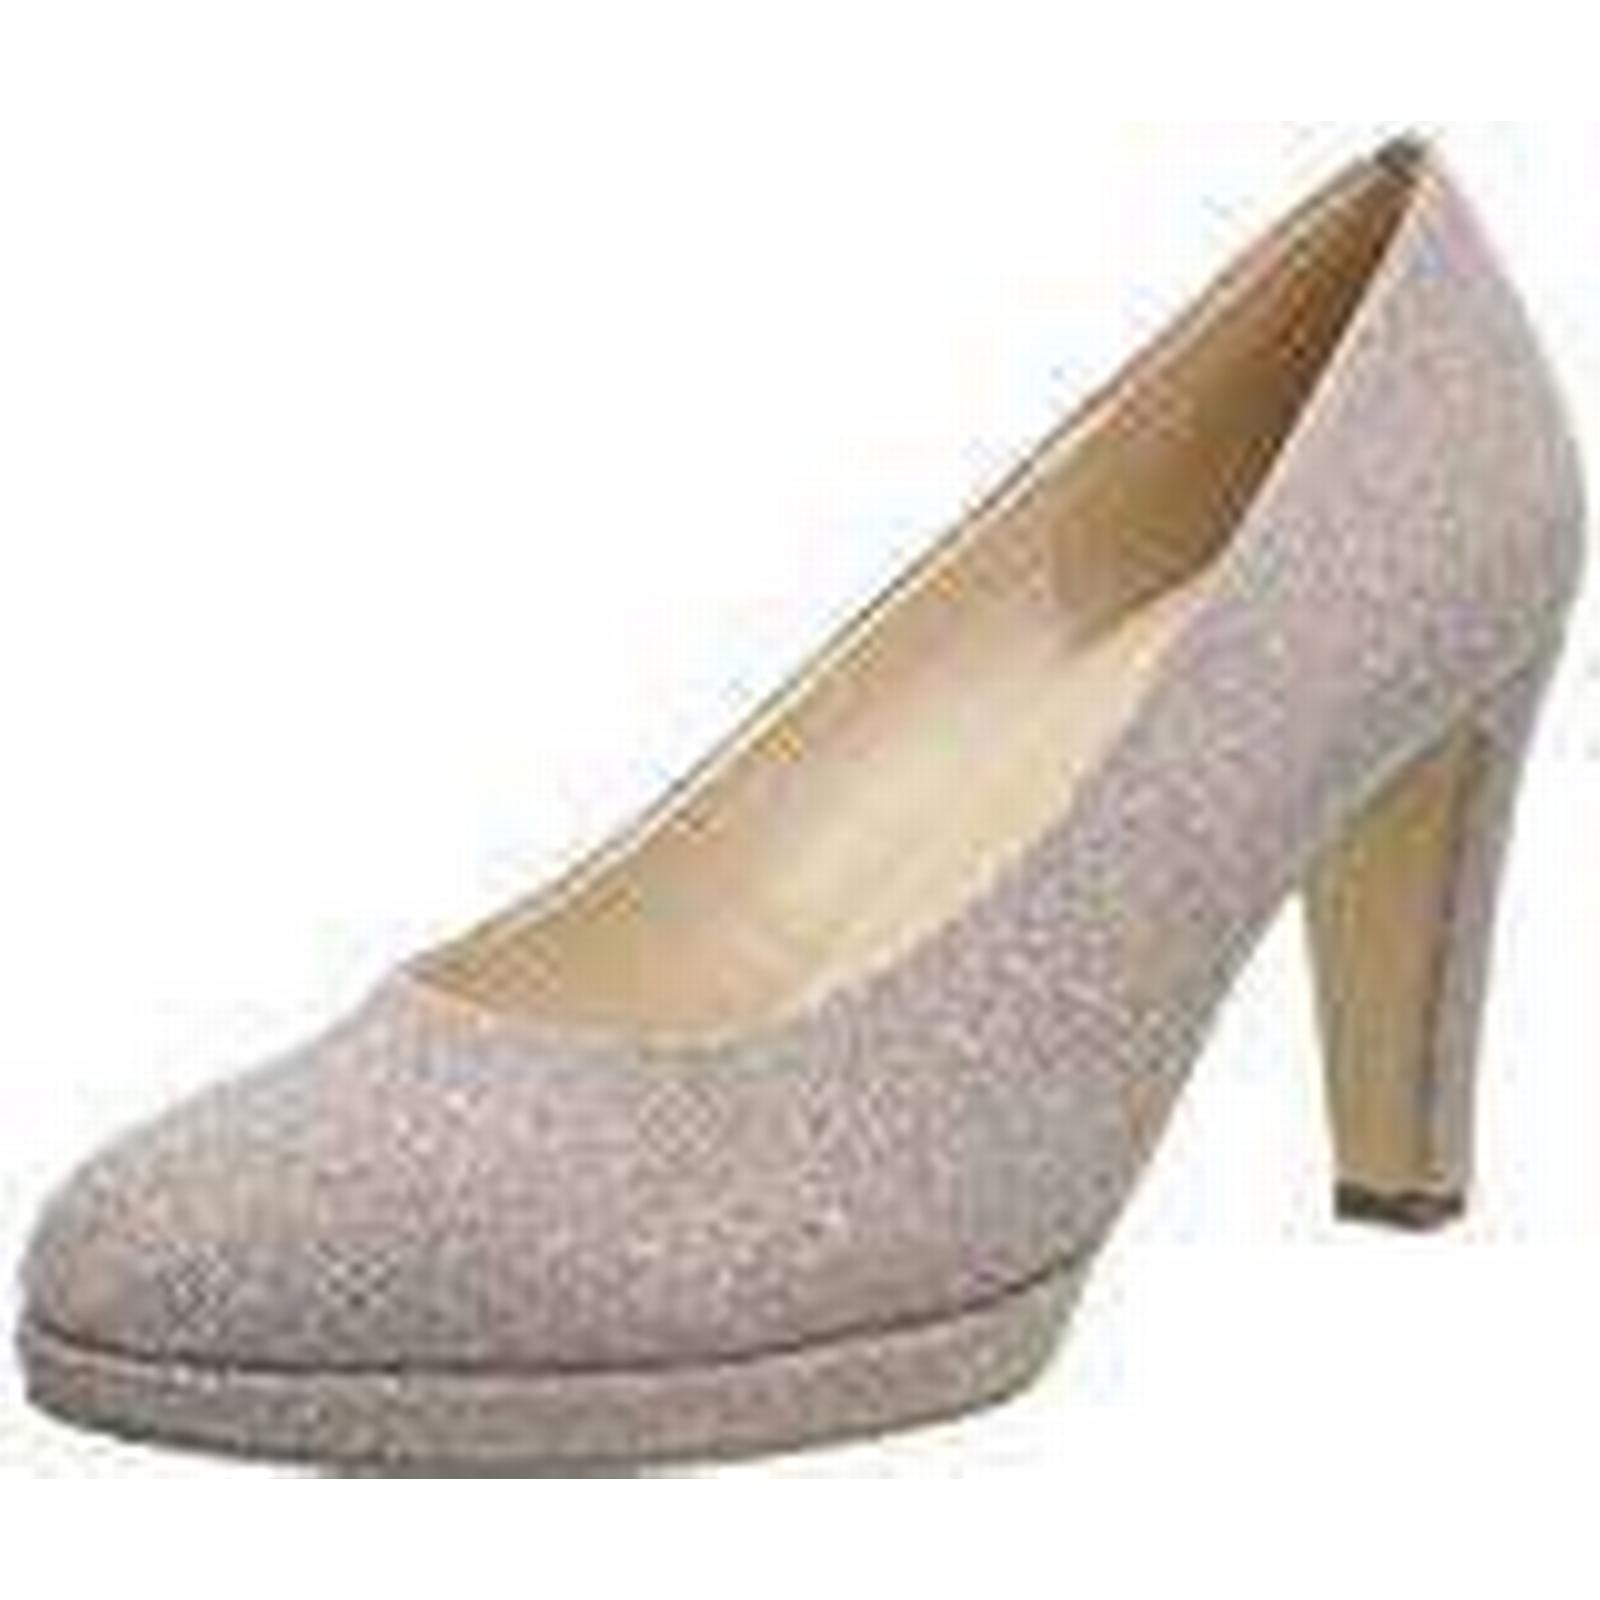 Gabor Shoes Women''s Fashion Closed-Toe UK Pumps, Multicolor (Rosato), 8 UK Closed-Toe 8 UK 8fd061